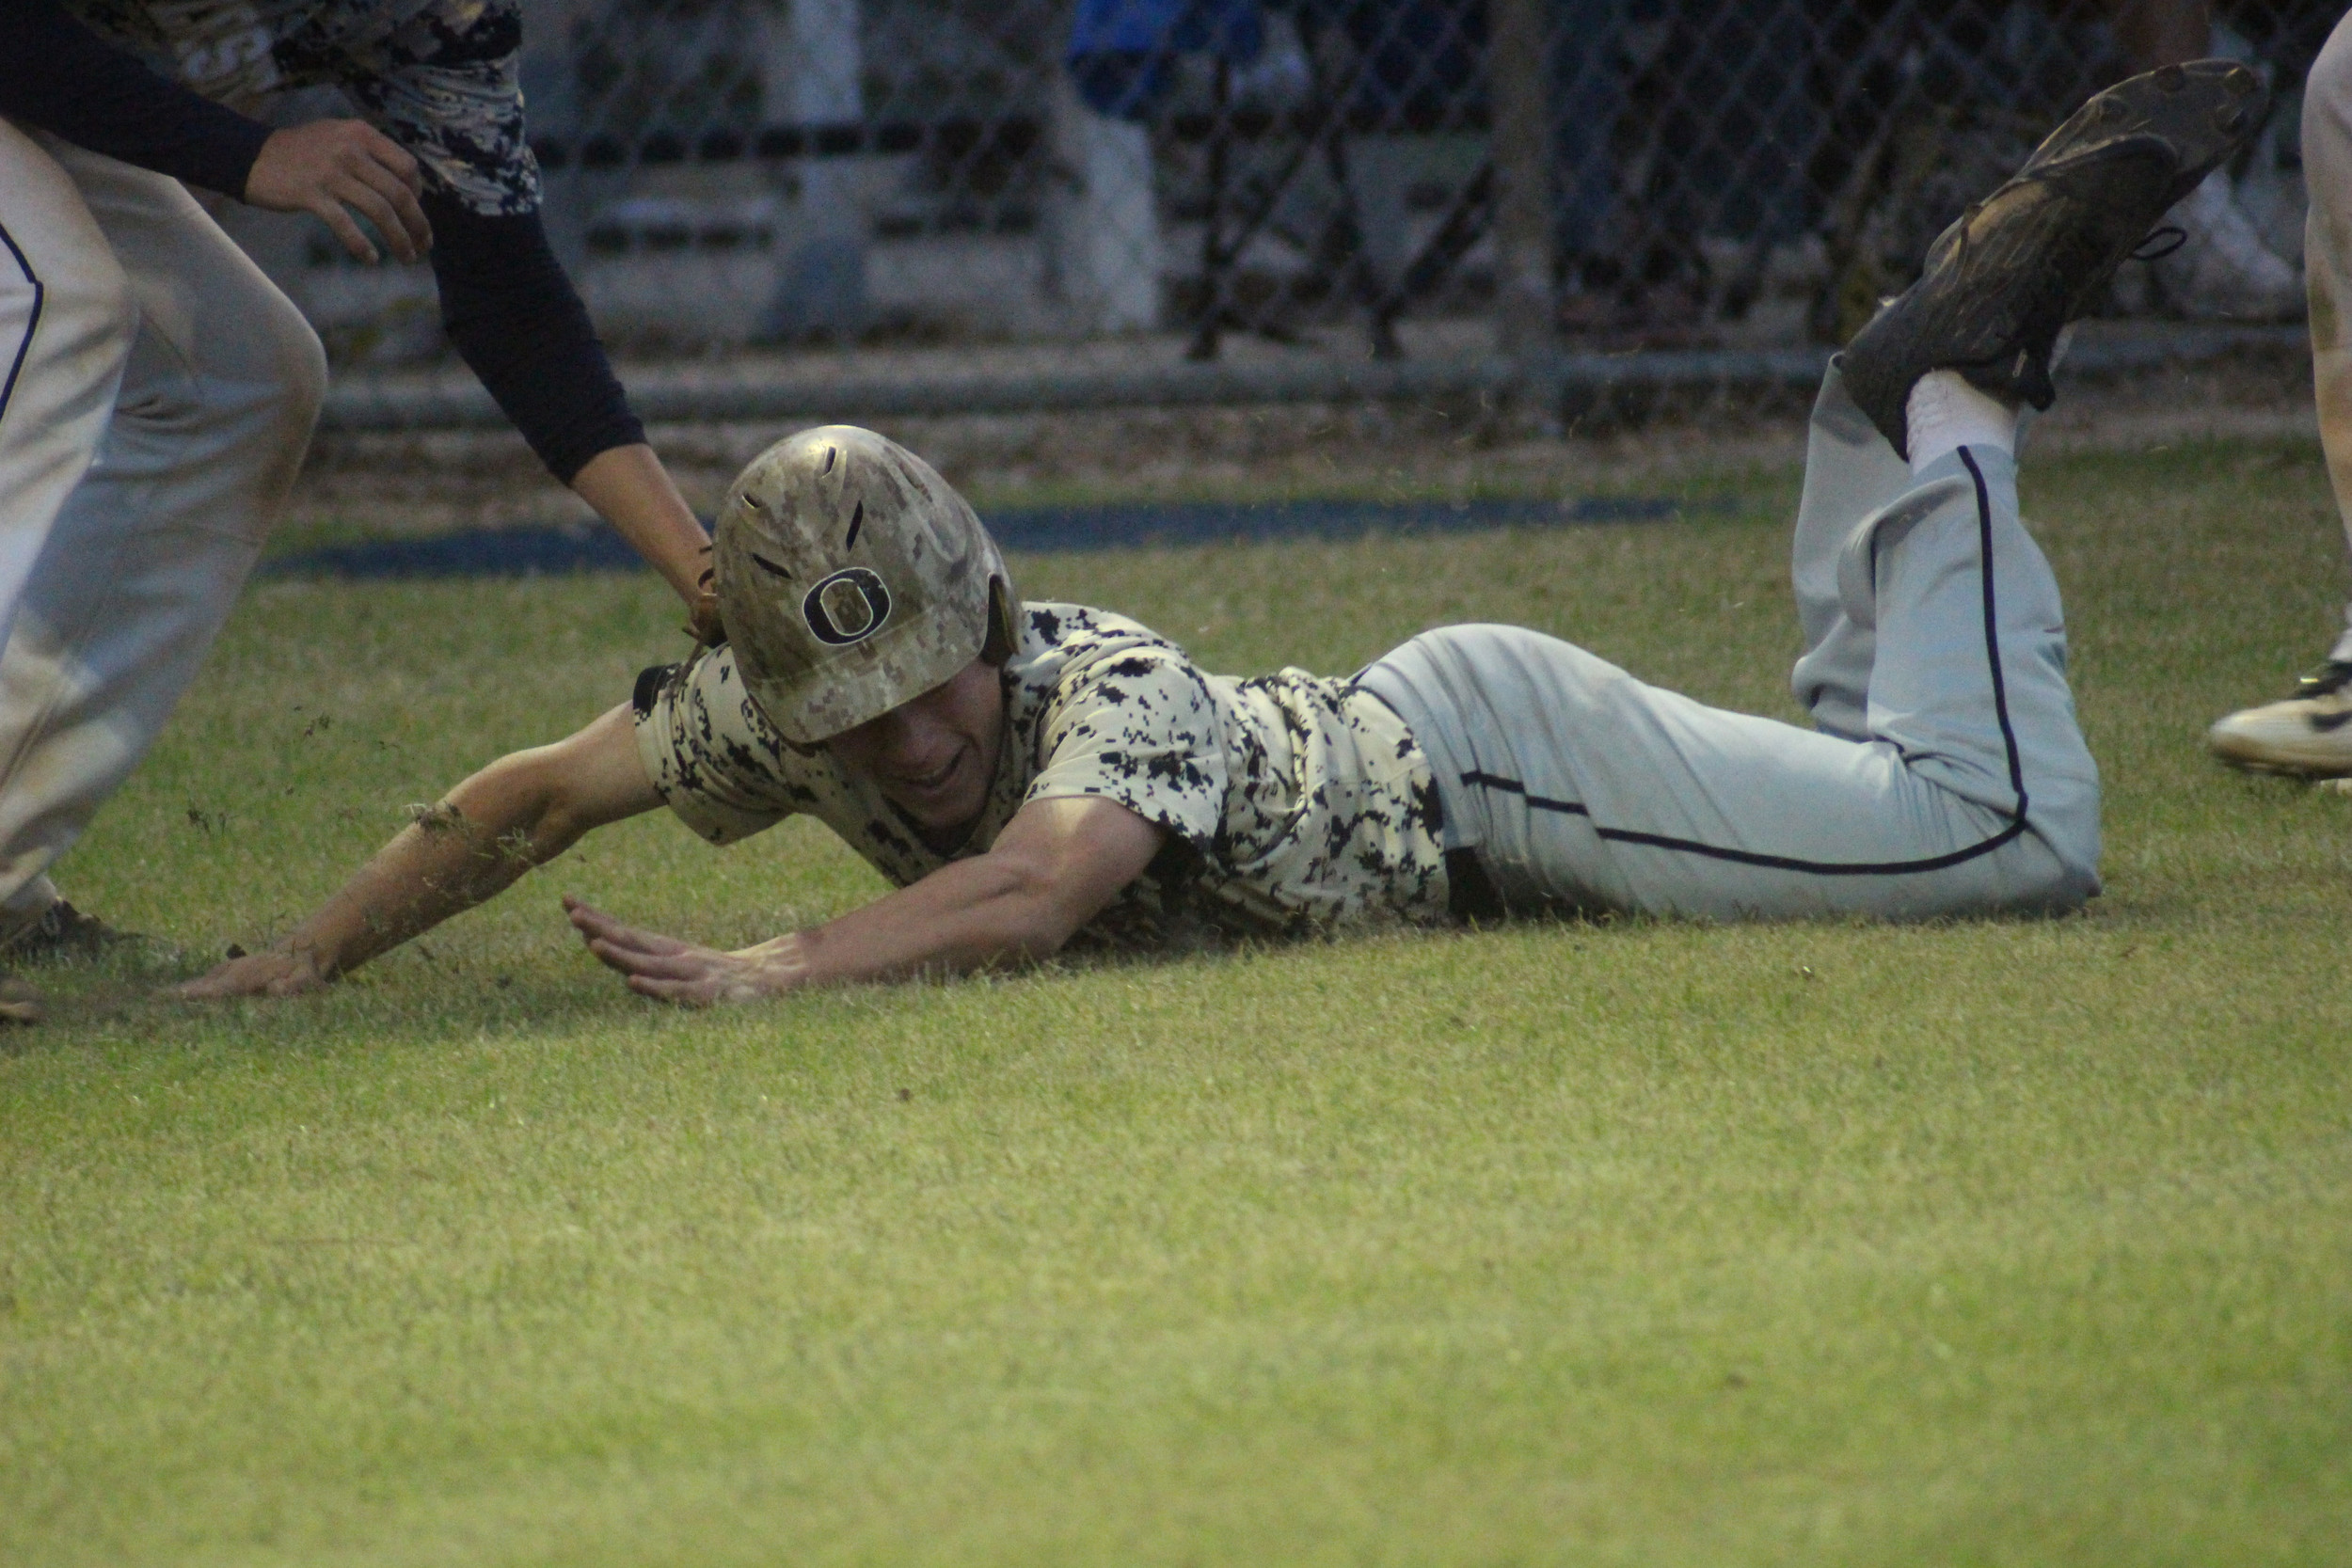 Oakleaf High baserunner Keegan Barrs gets snagged on a third base rundown in Knights 3-2 loss to 3A-University Christian Monday night in Jacksonville.